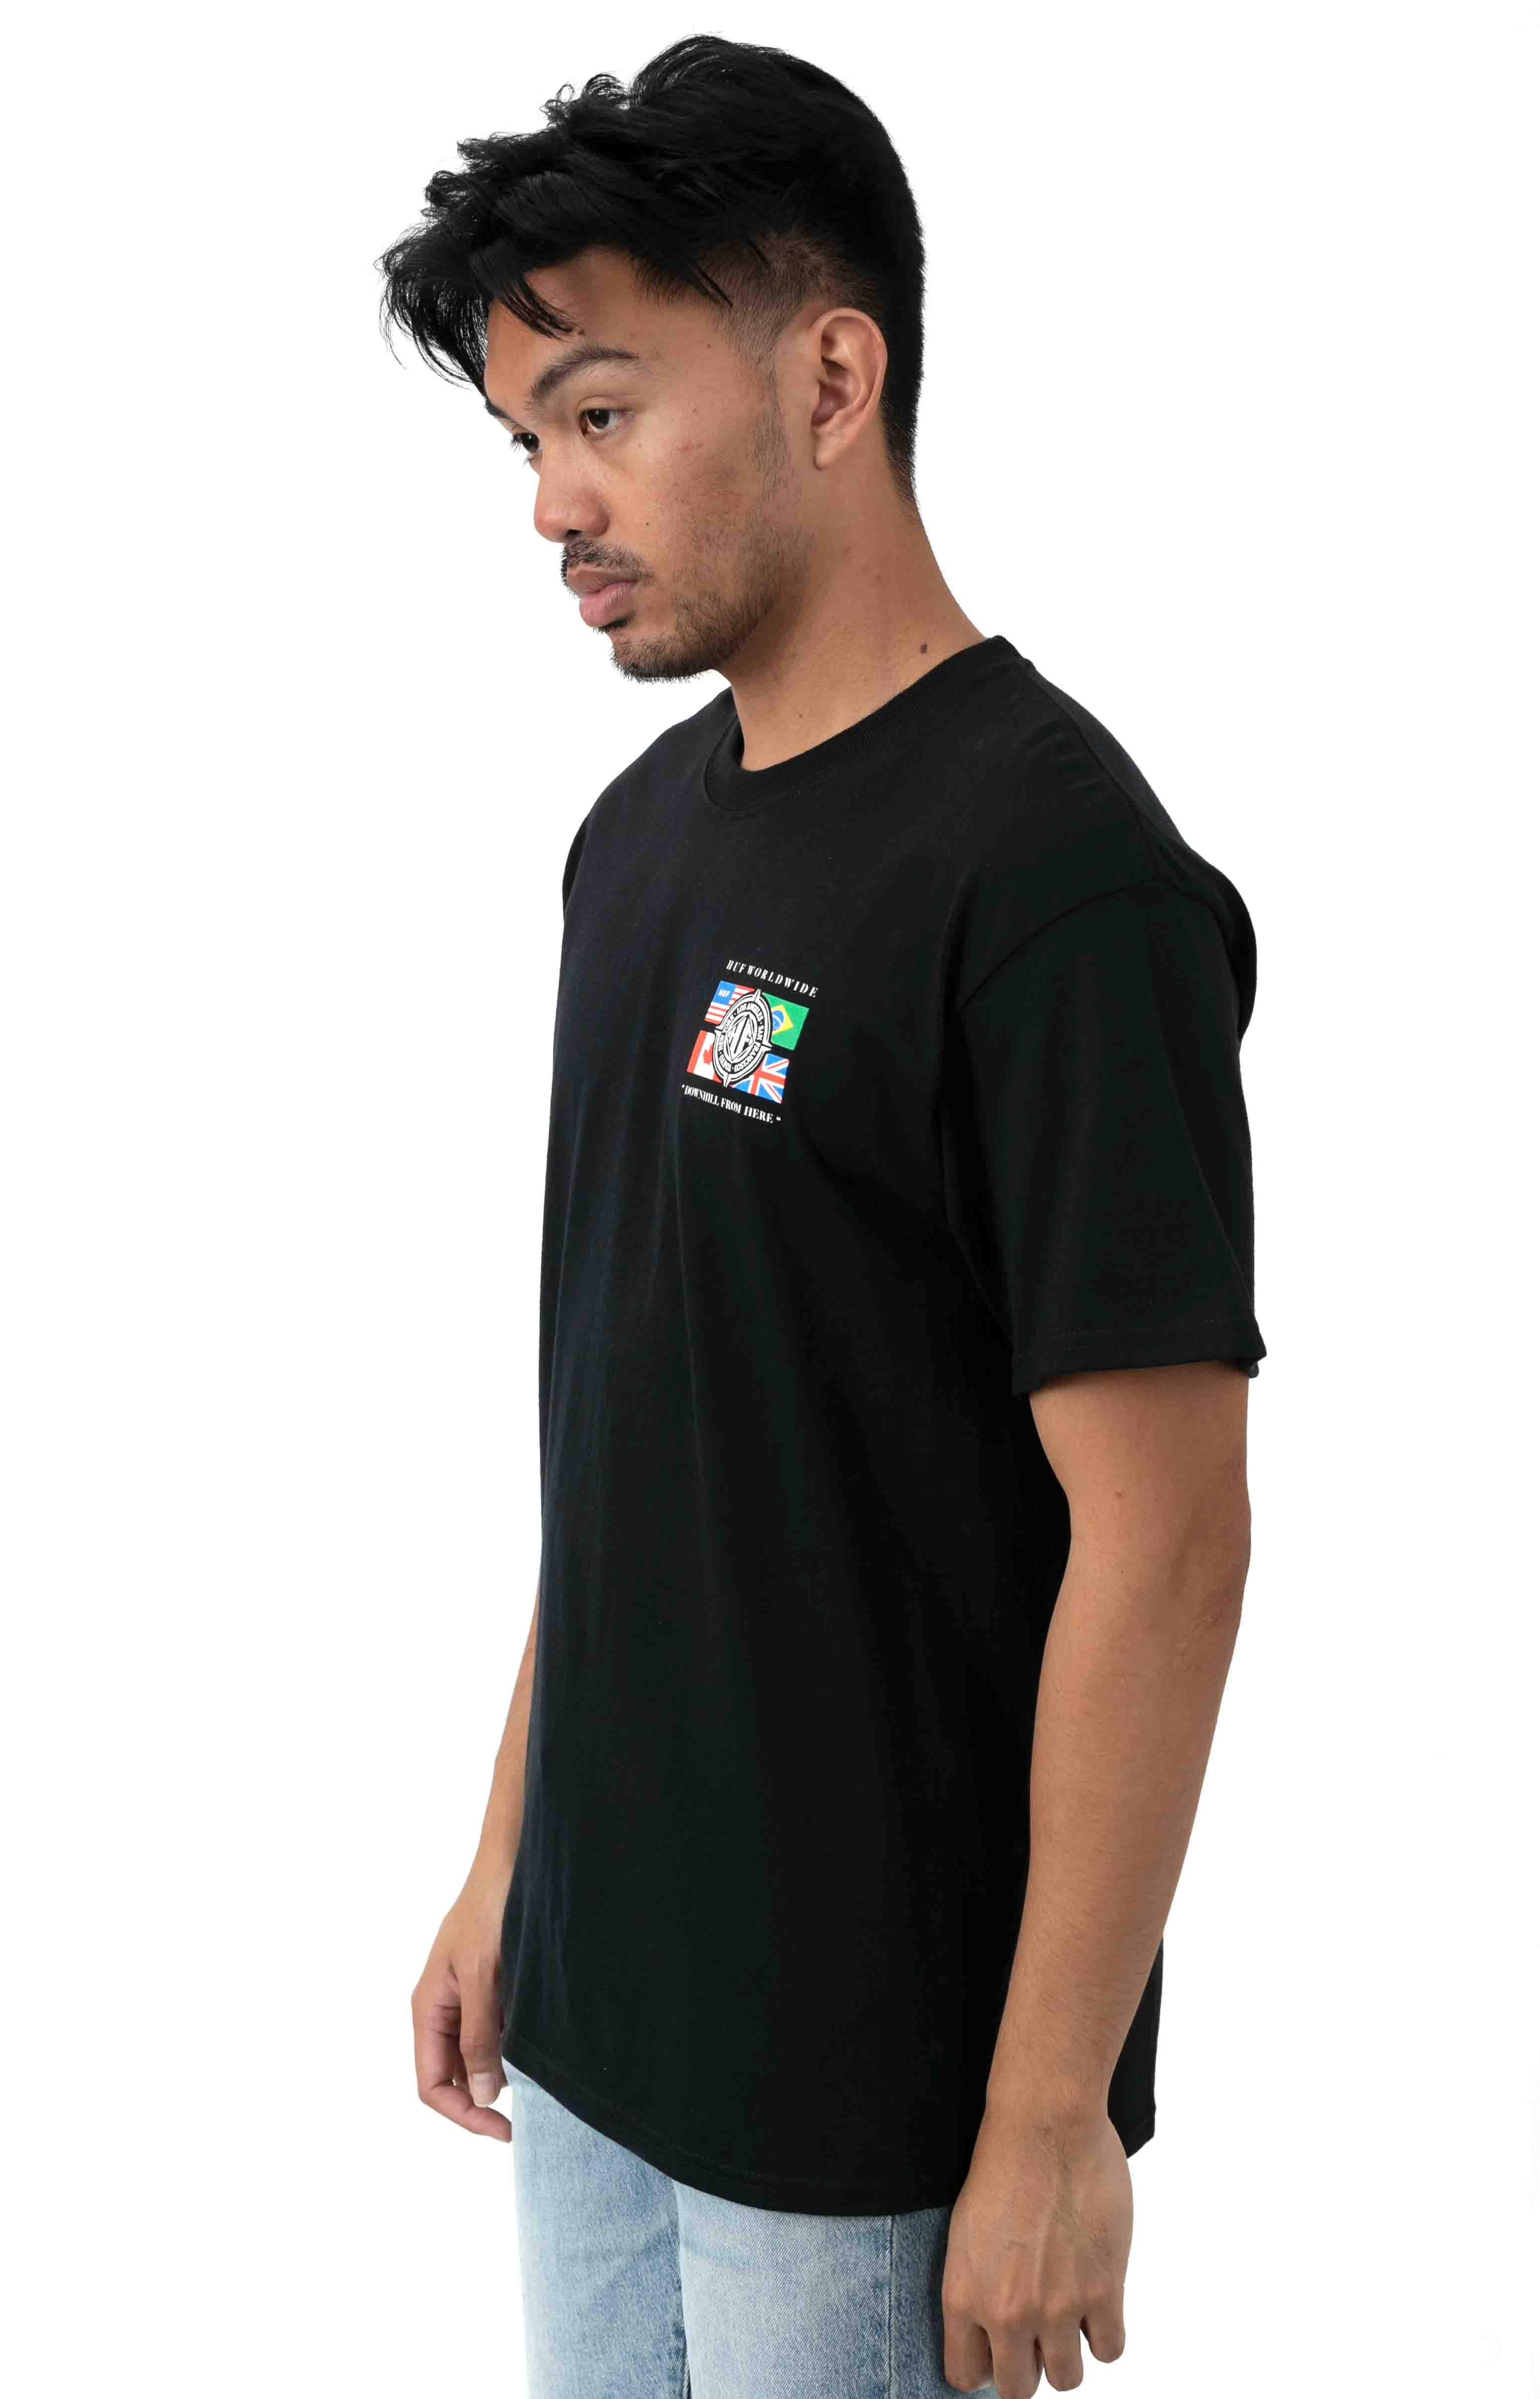 Global Wave T-Shirt - Black  3